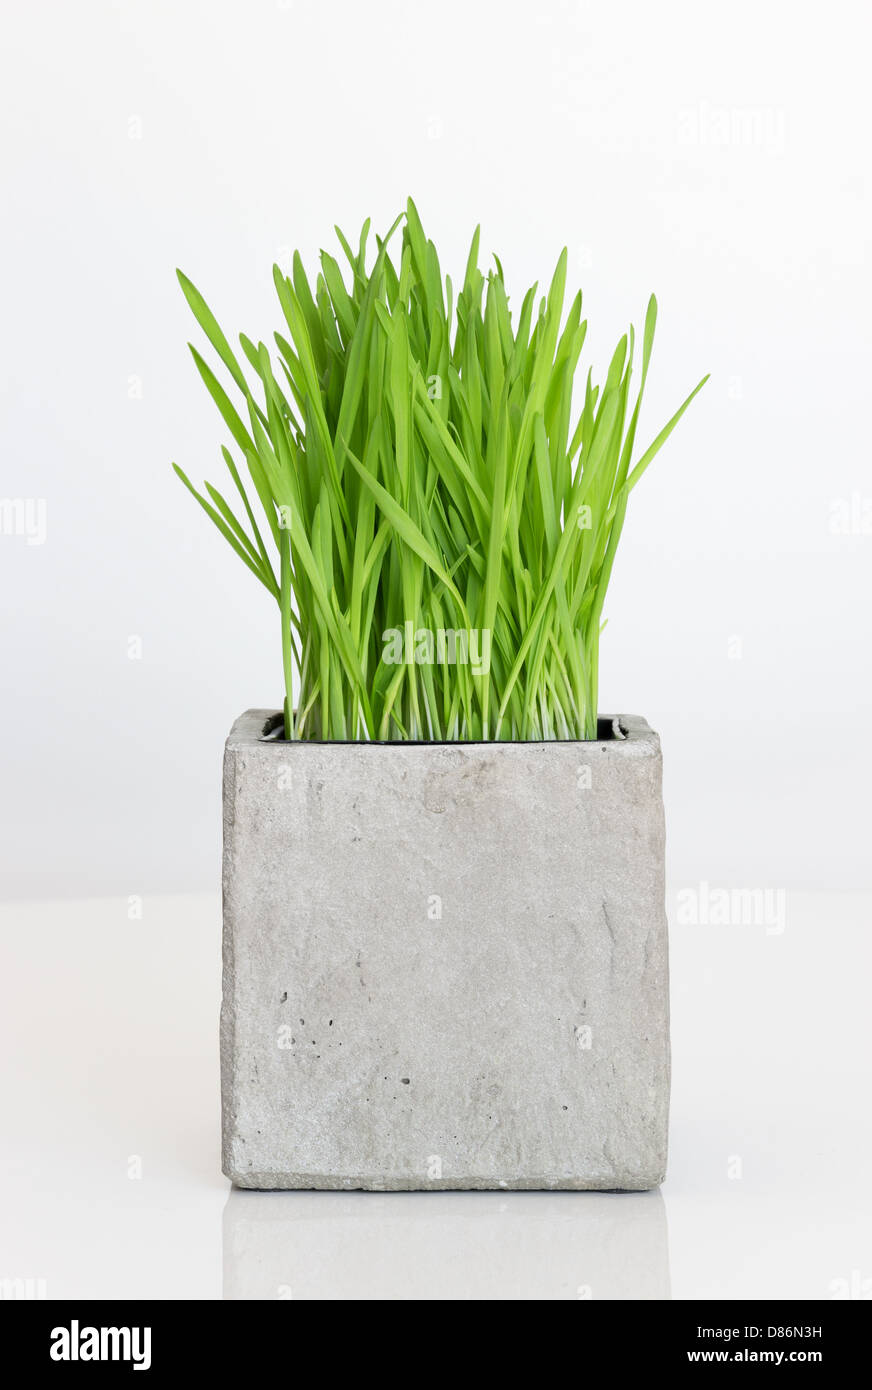 Fresh green wheatgrass growing in concrete pot. - Stock Image